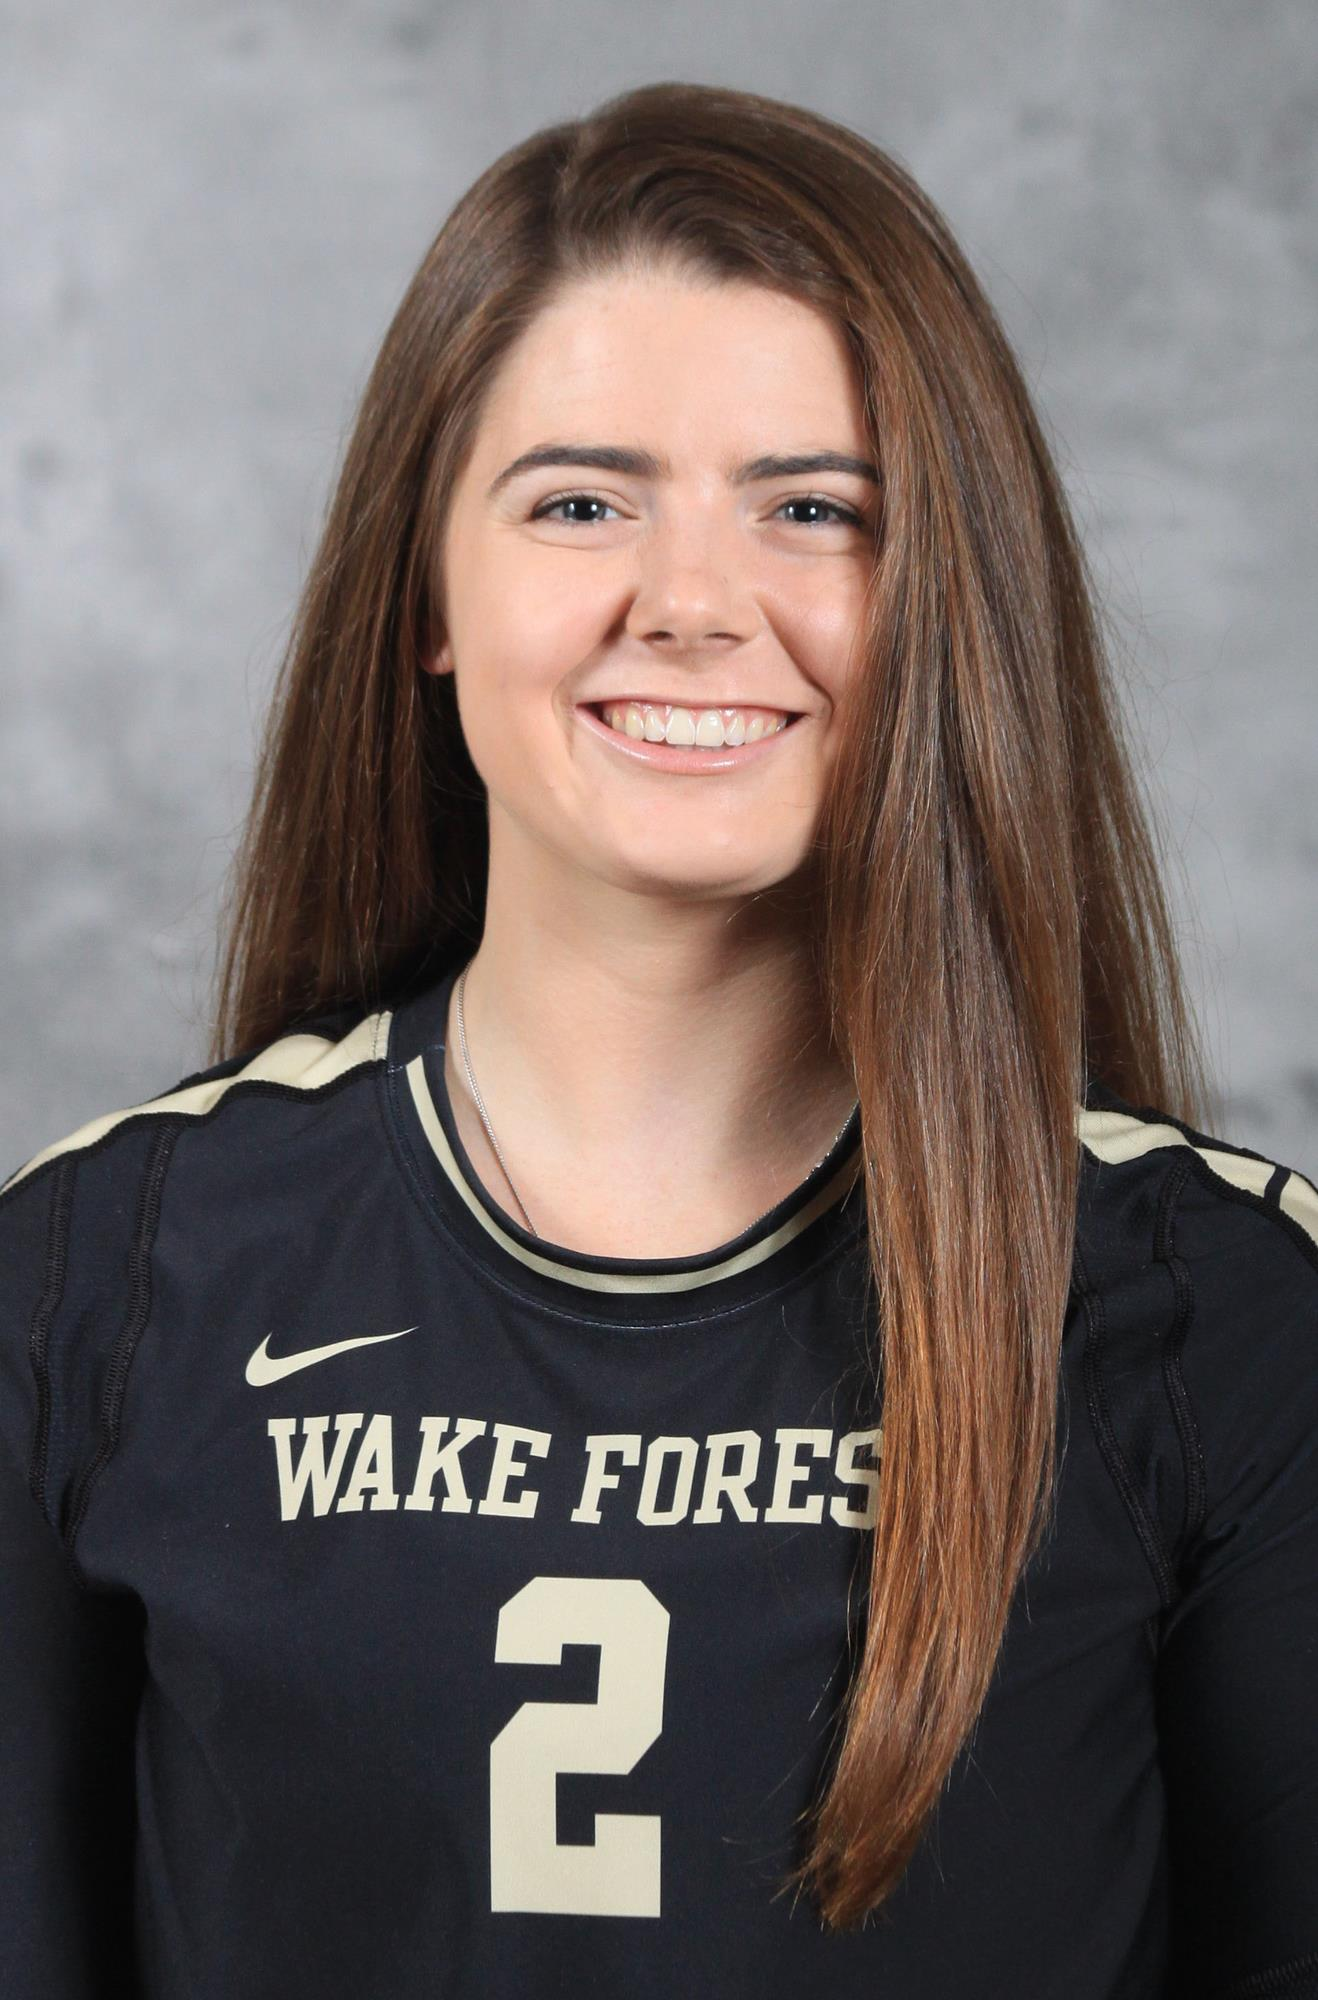 2019 Women's Volleyball Roster - Wake Forest University